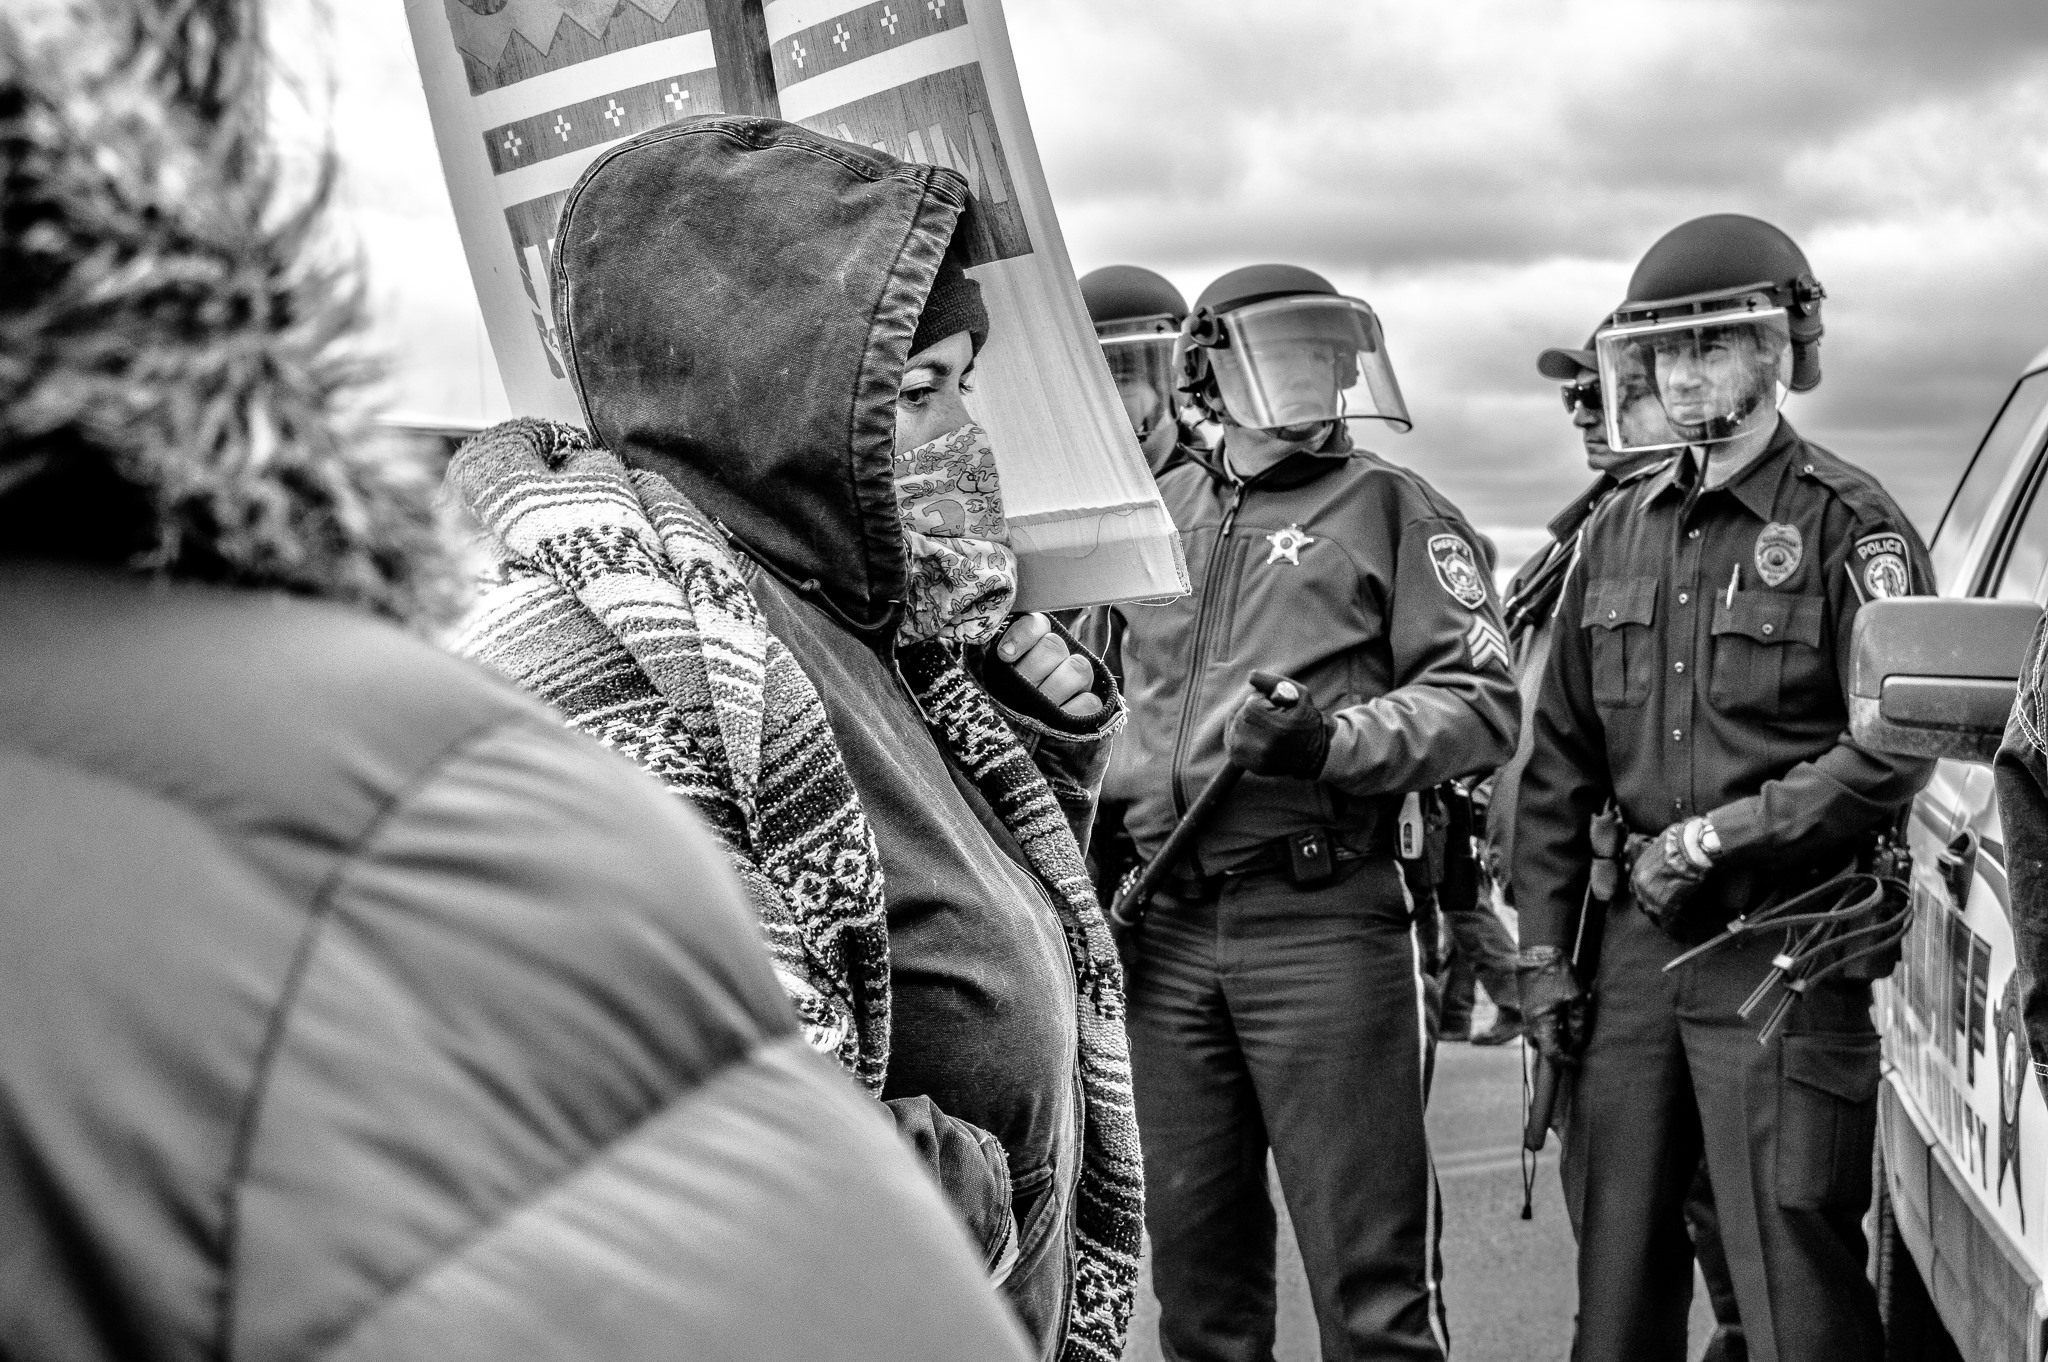 Jenni Giovannetti: Weapons pointed at #NoDAPL water protectors